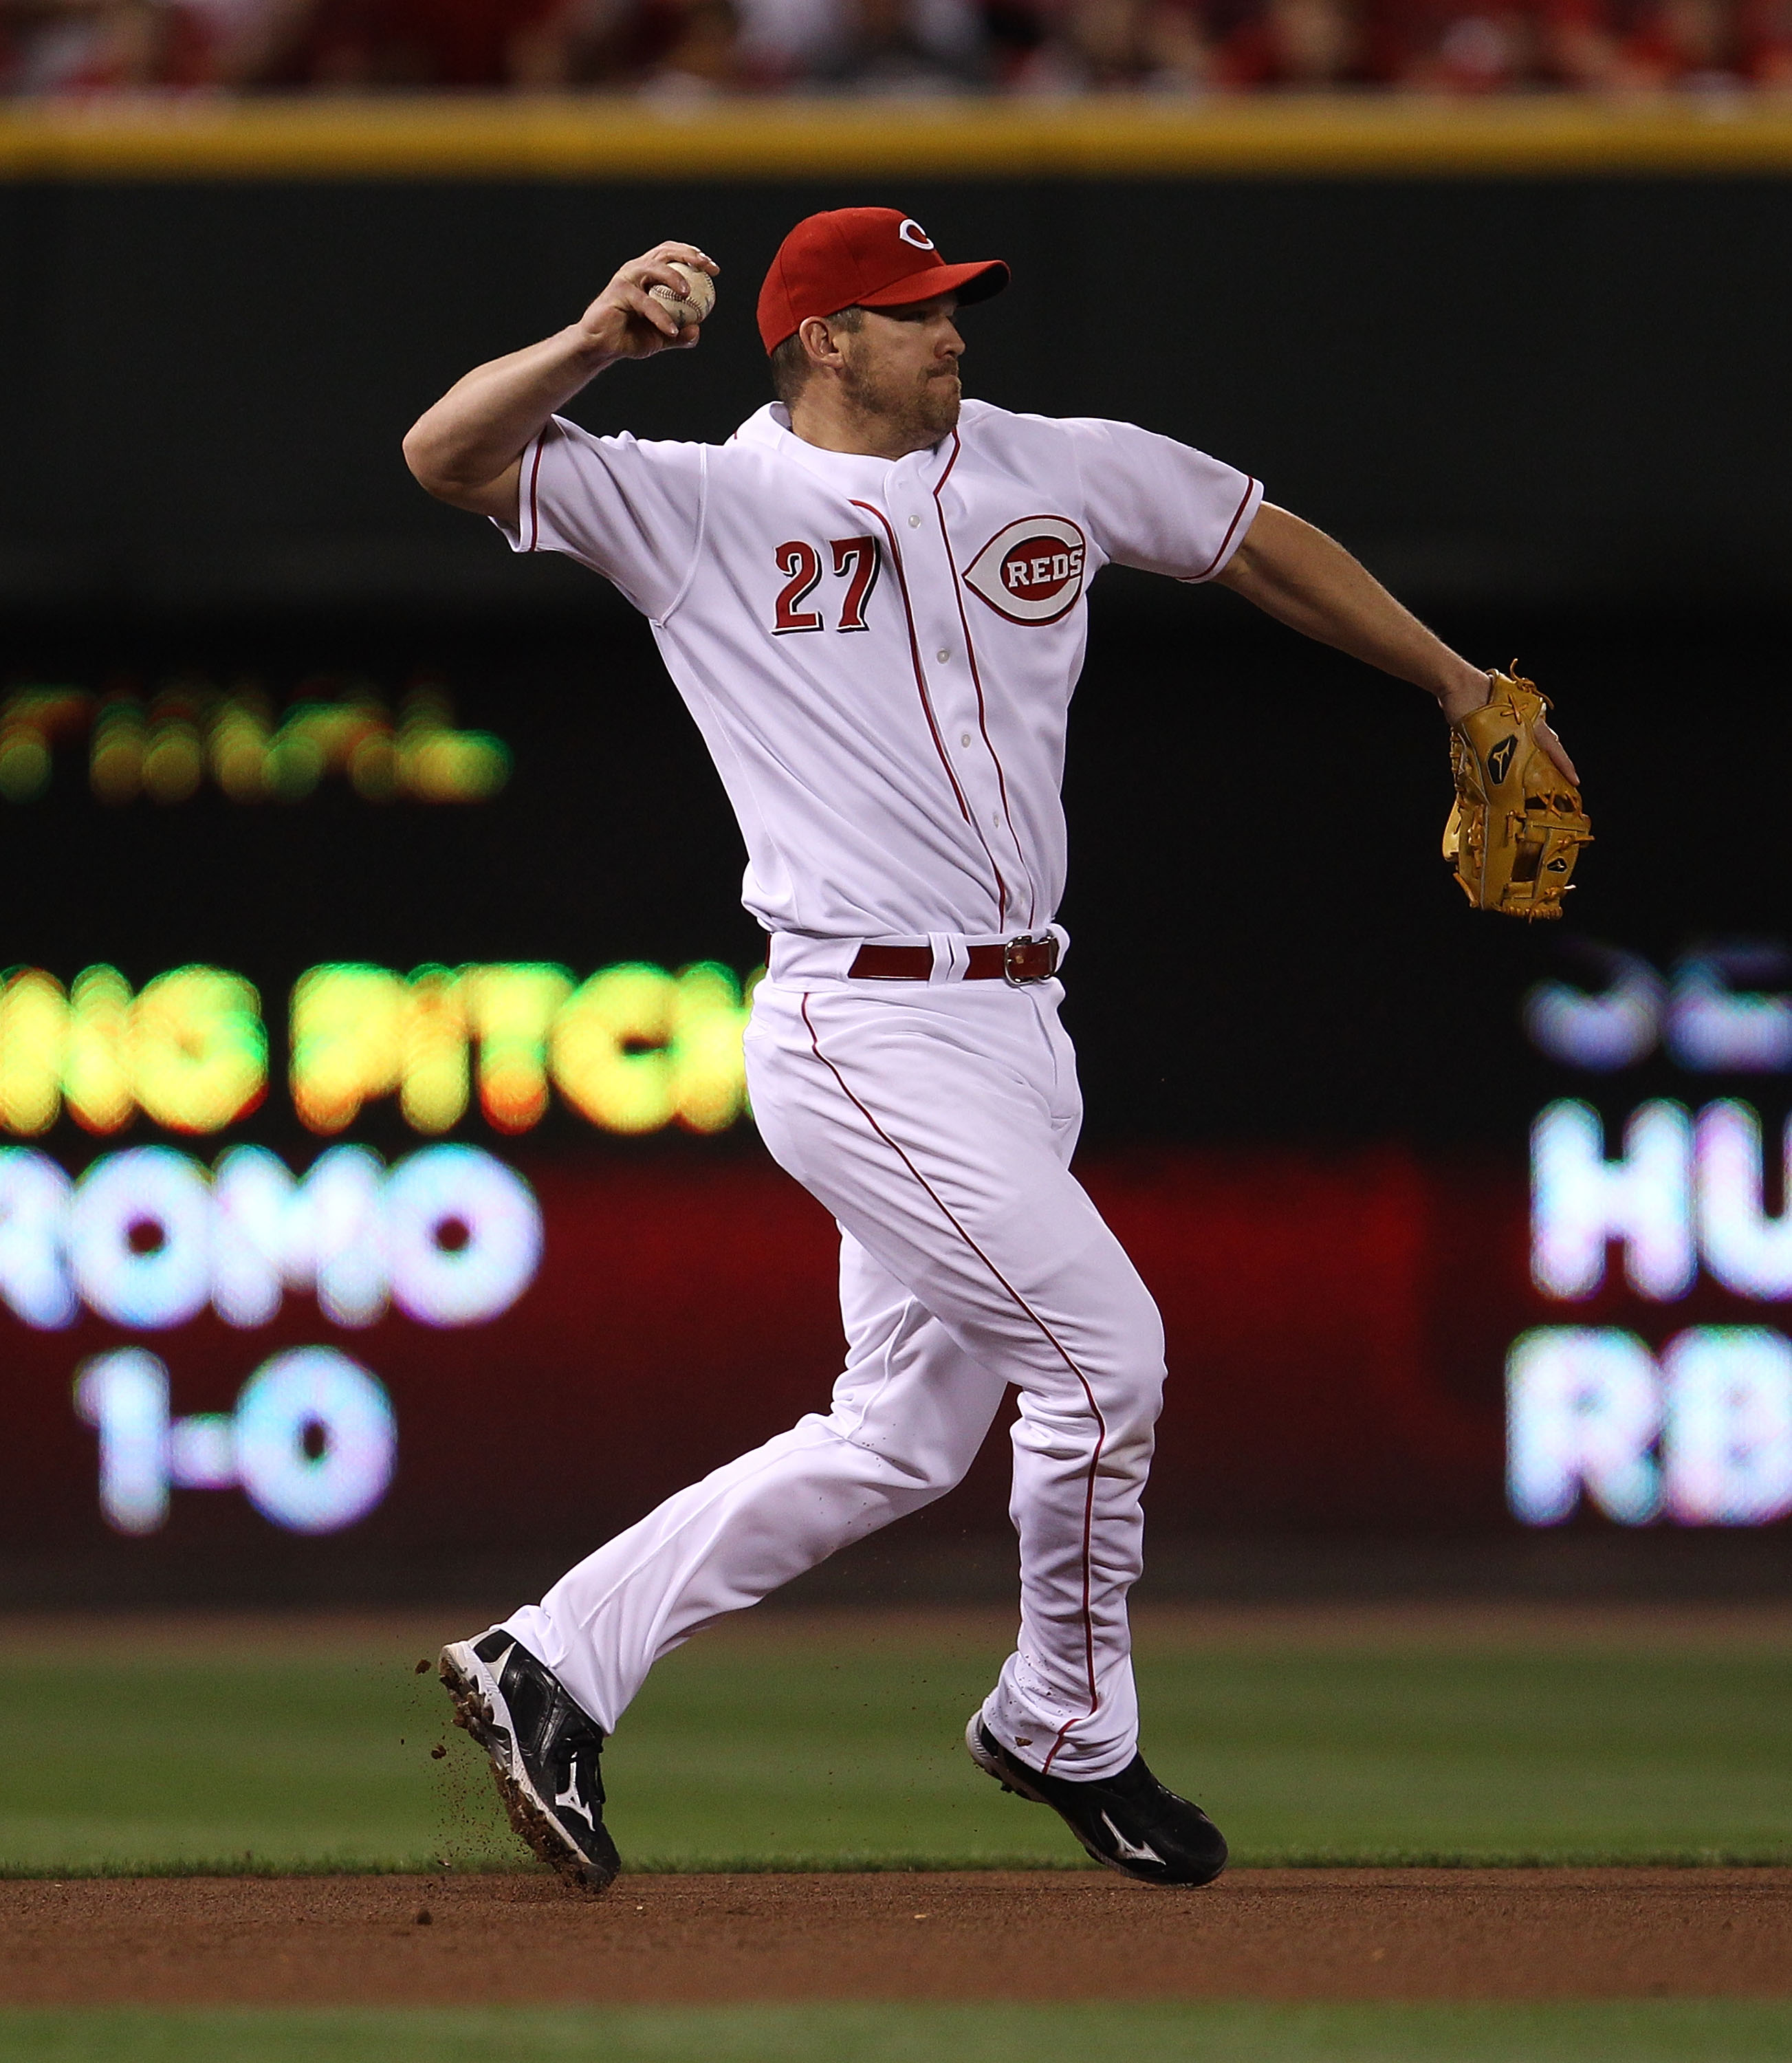 CINCINNATI - OCTOBER 10: Scott Rolen #27 of the Cincinnati Reds throws to 2nd base against the Philadelphia Phillies during game 3 of the NLDS at Great American Ball Park on October 10, 2010 in Cincinnati, Ohio. The Phillies defeated the Reds 2-0.  (Photo